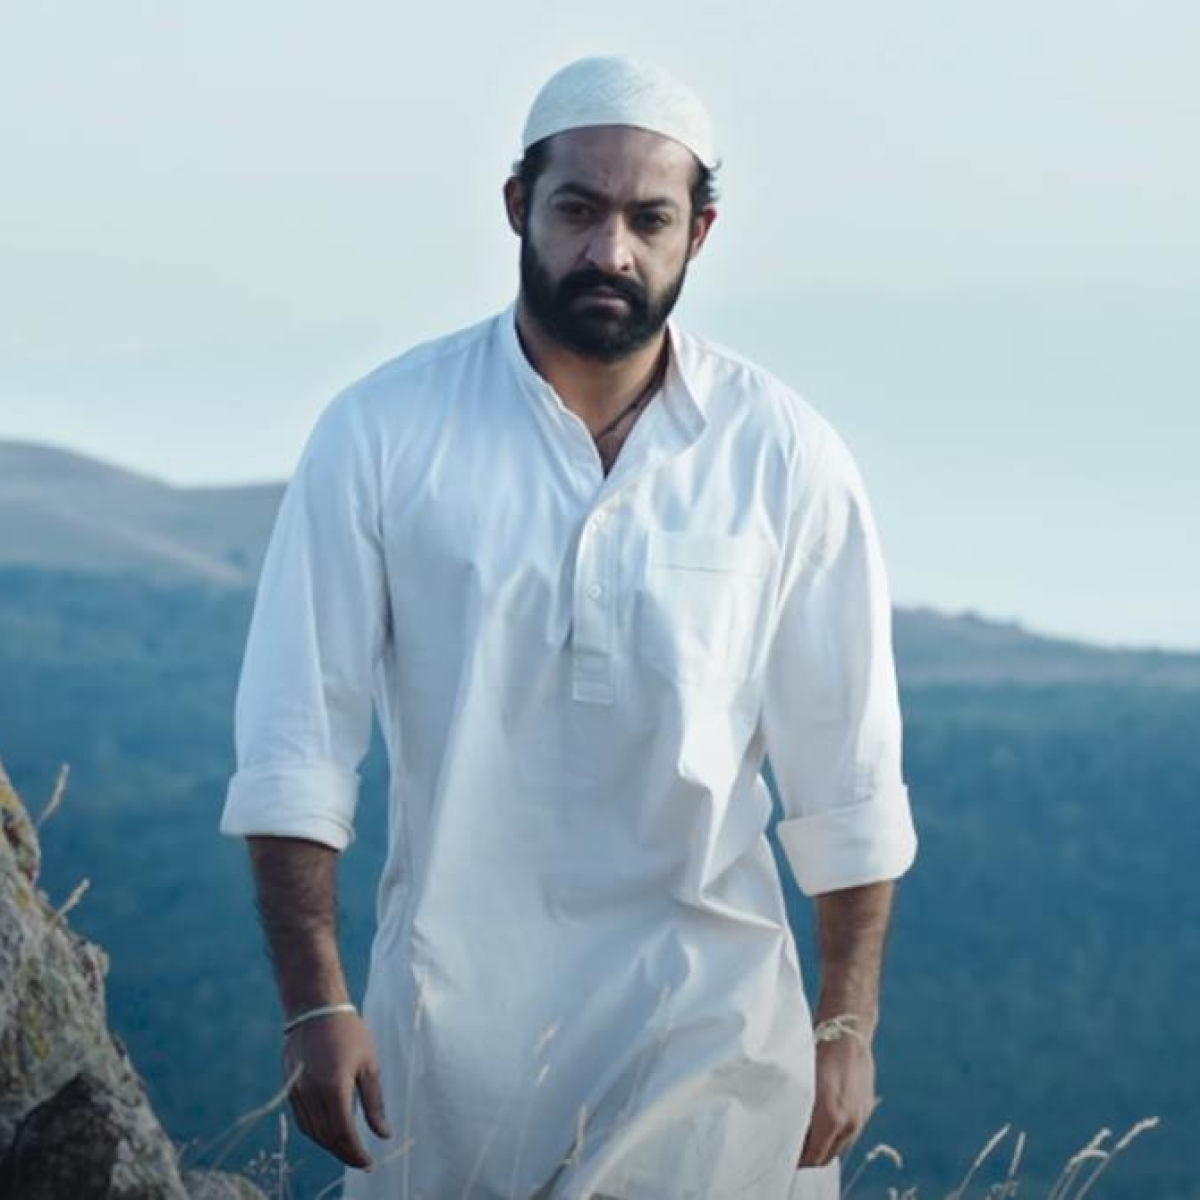 FPJ Explains: What's controversial about SS Rajamouli's portrayal of Komaram Bheem in 'RRR'?